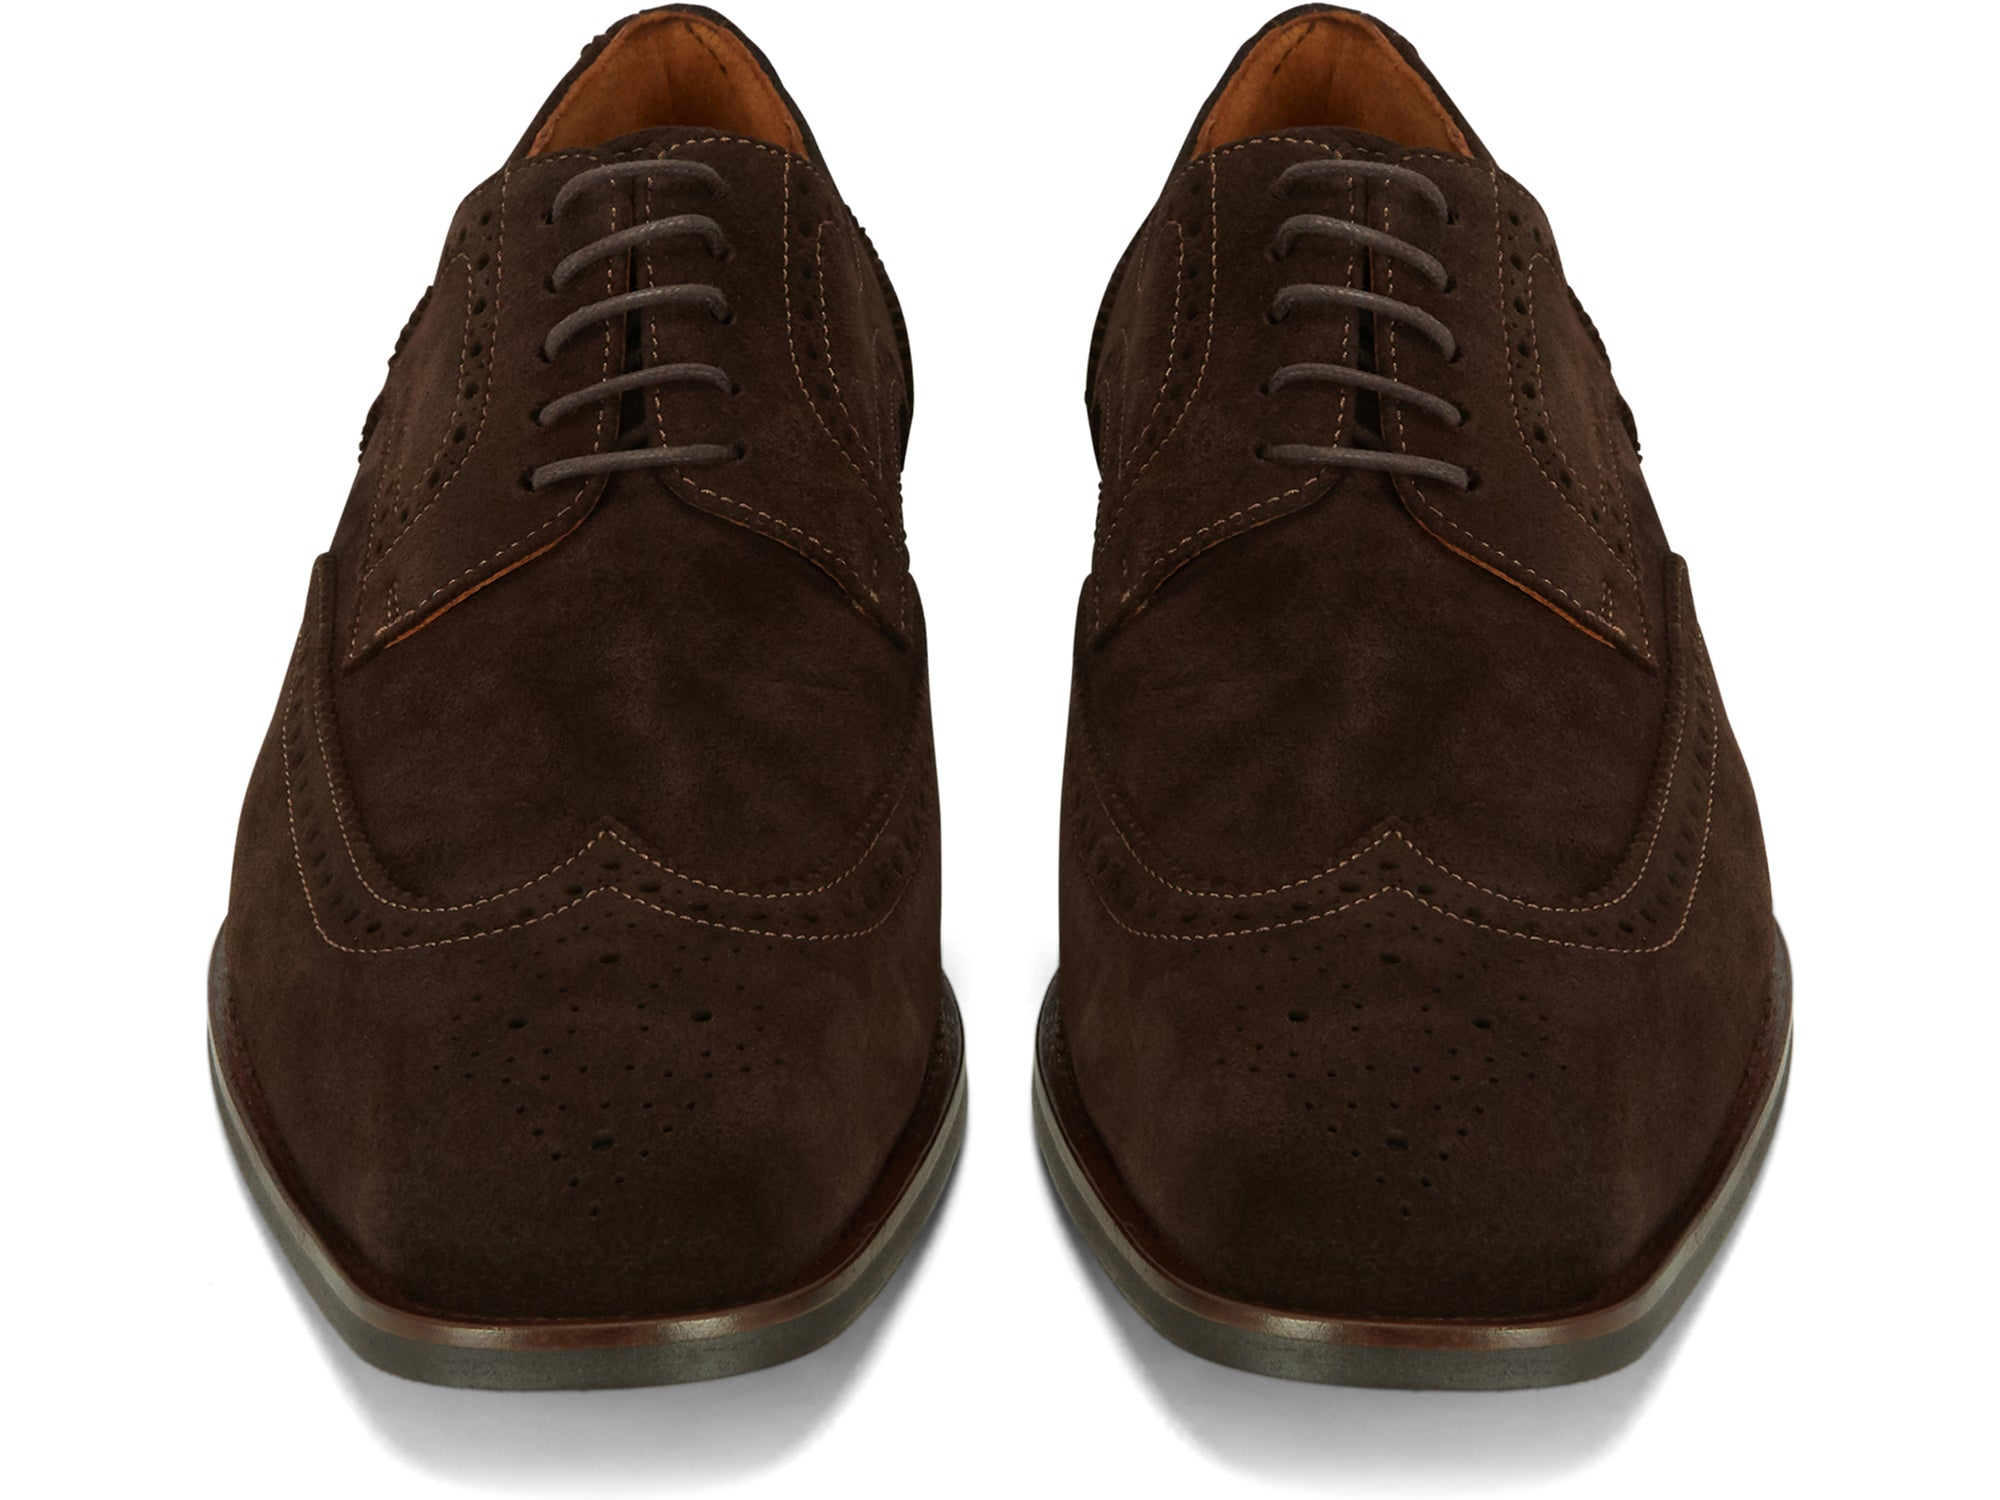 Smith Suede Brogue